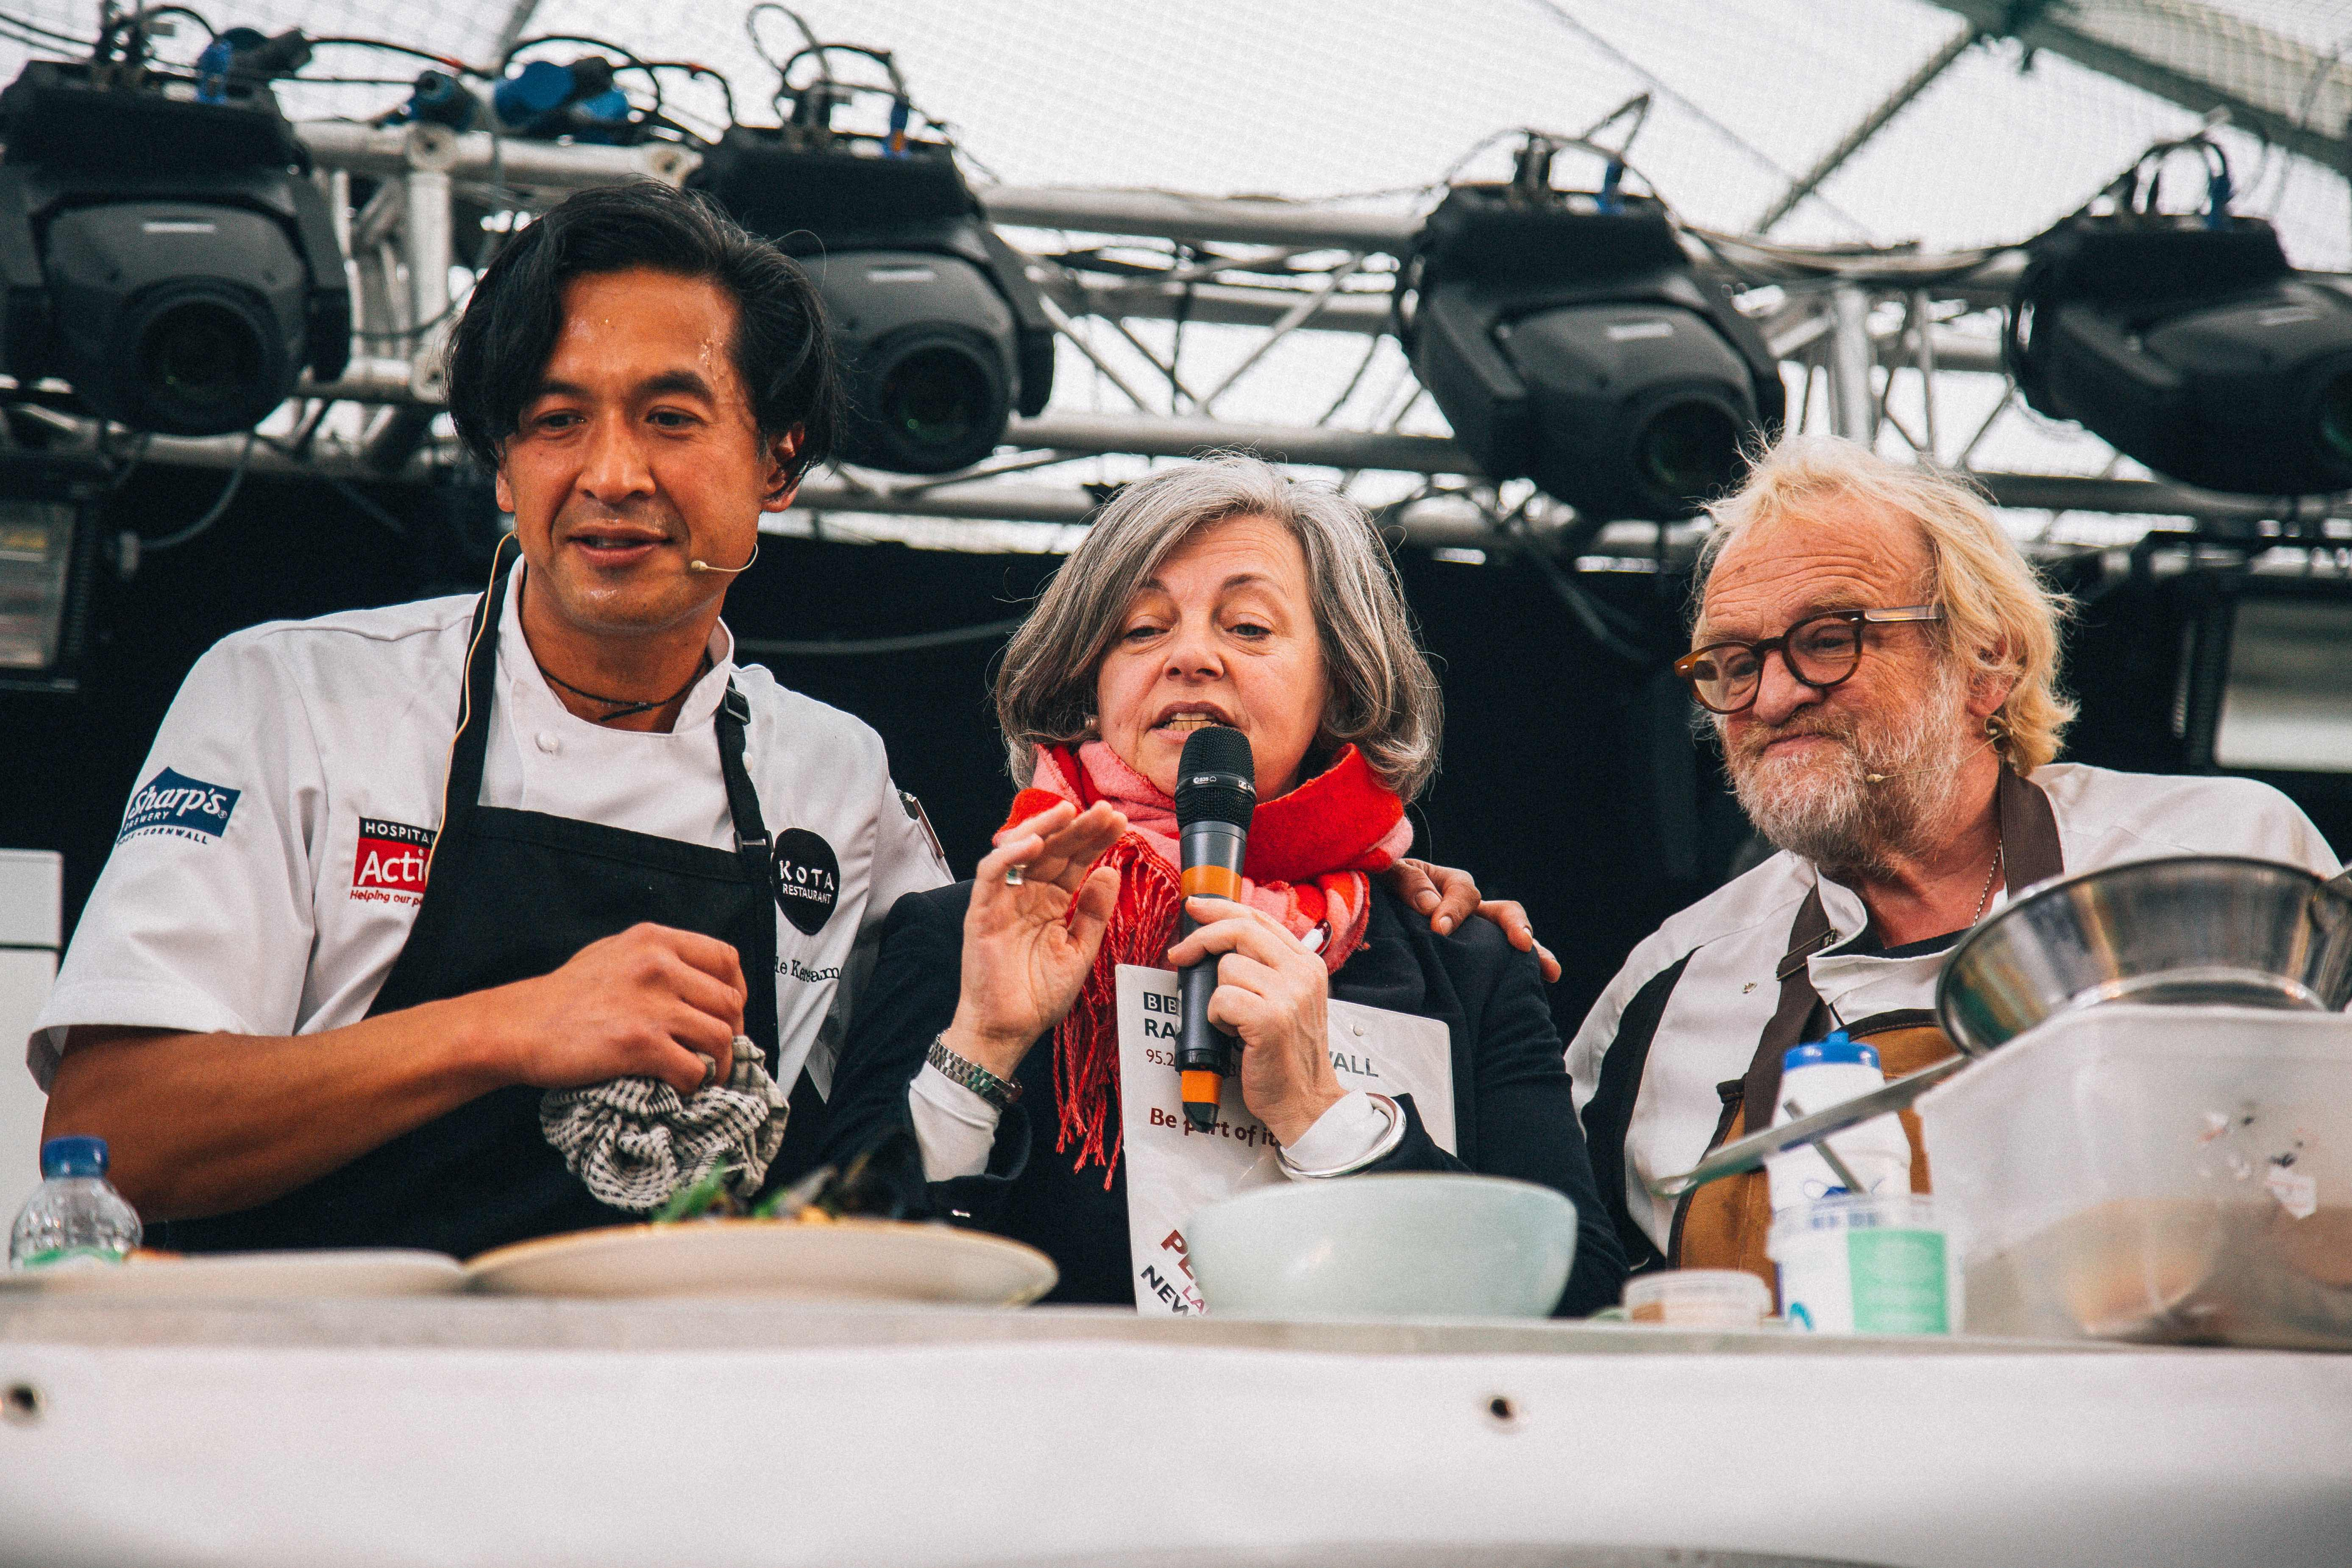 Chef Line Up for 2019 will be our best yet